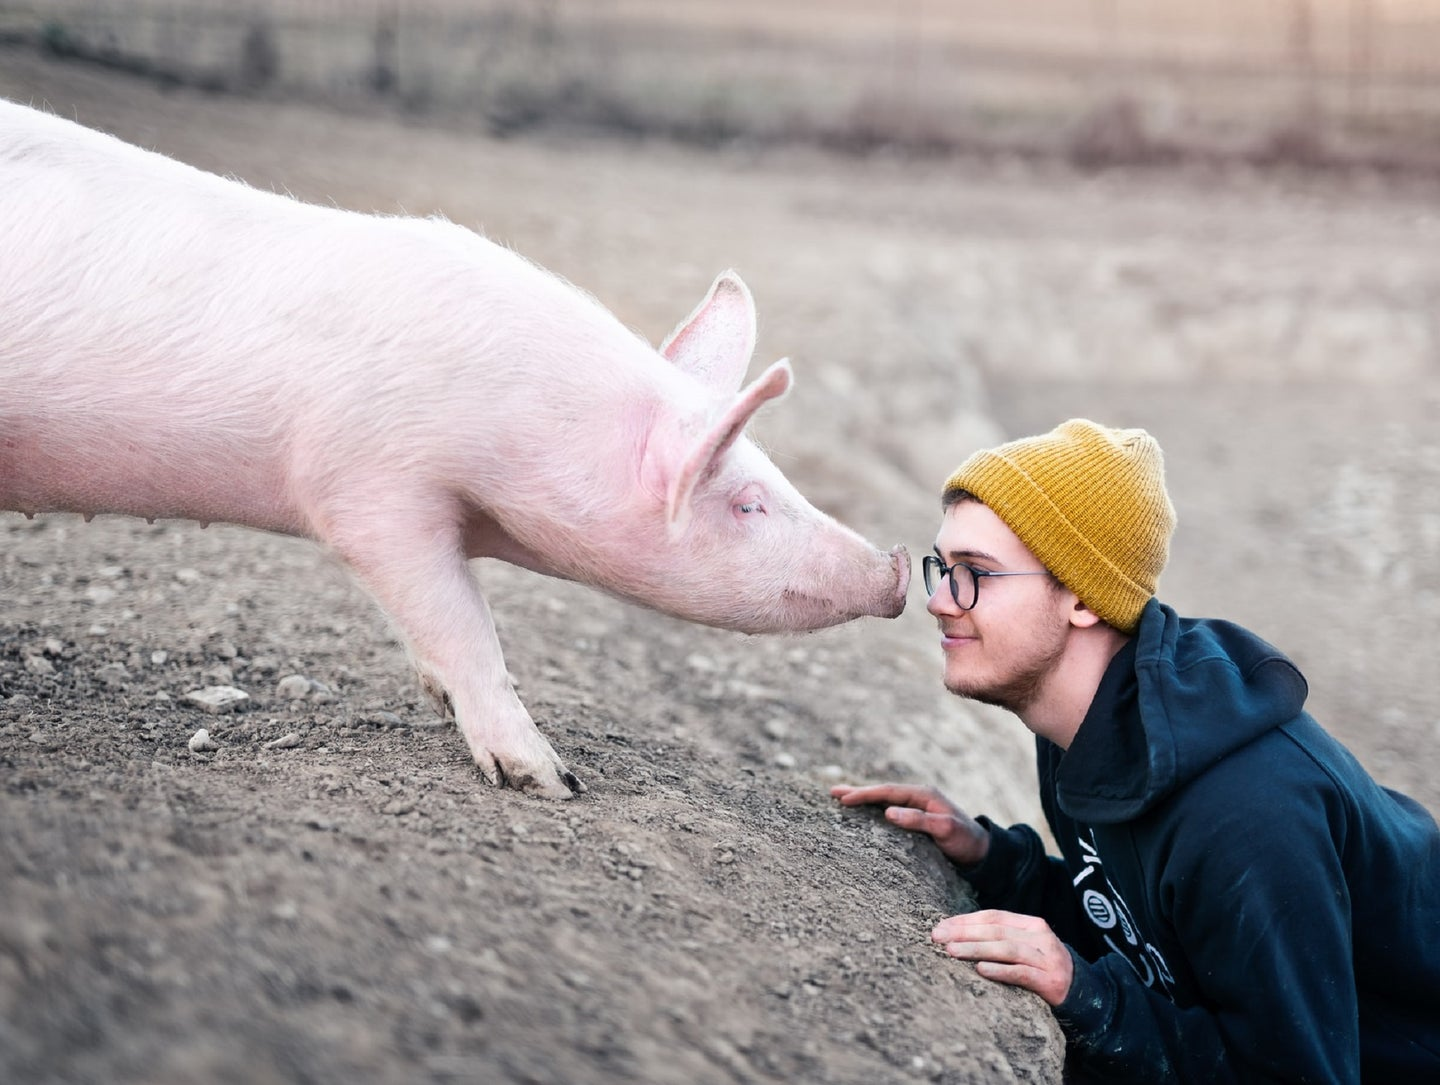 A pink pig nuzzling a person in glasses and a yellow beanie